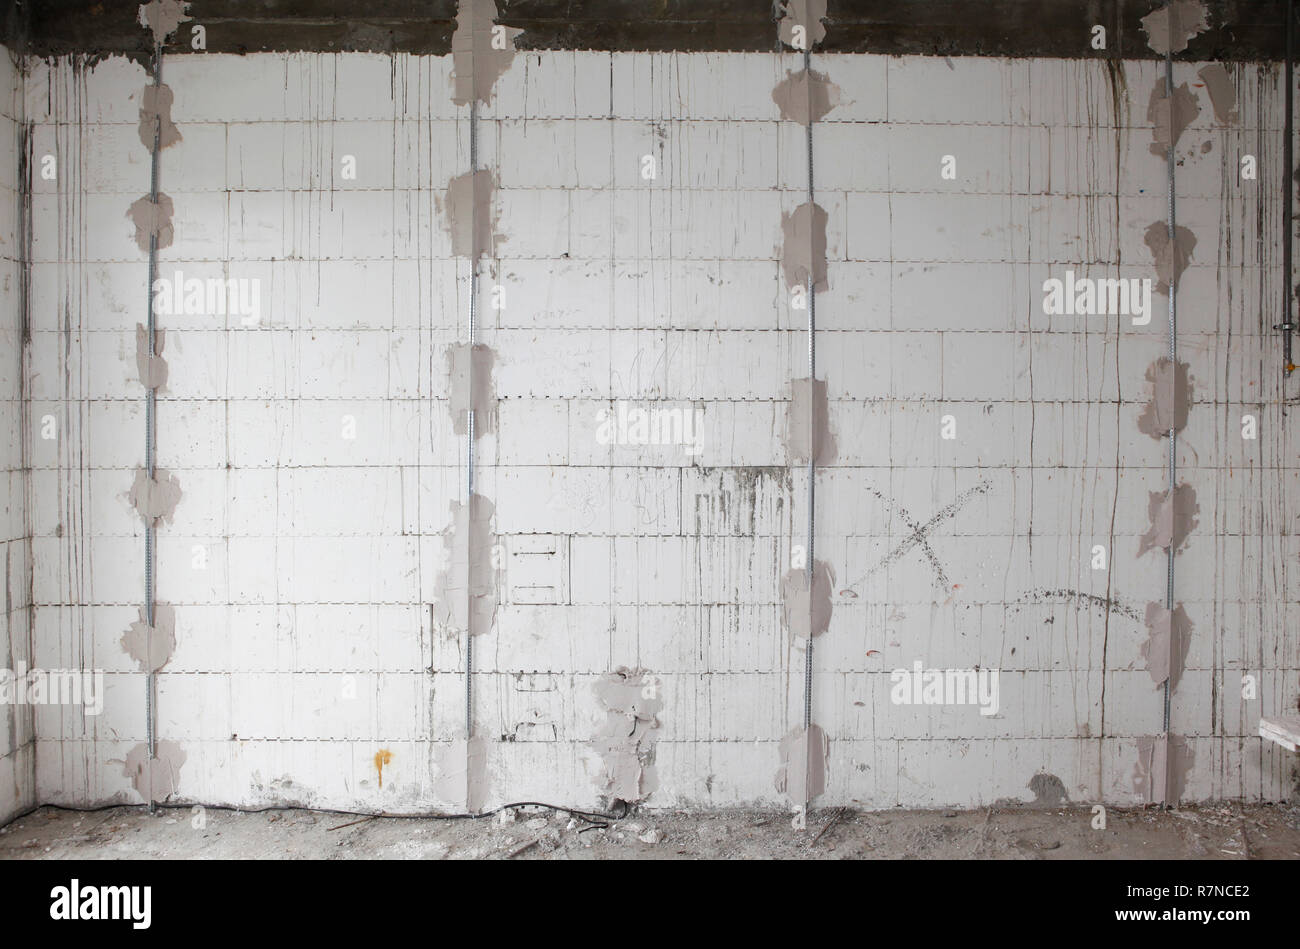 Preparing walls for plastering house  walls with metal holders interior. Stock Photo